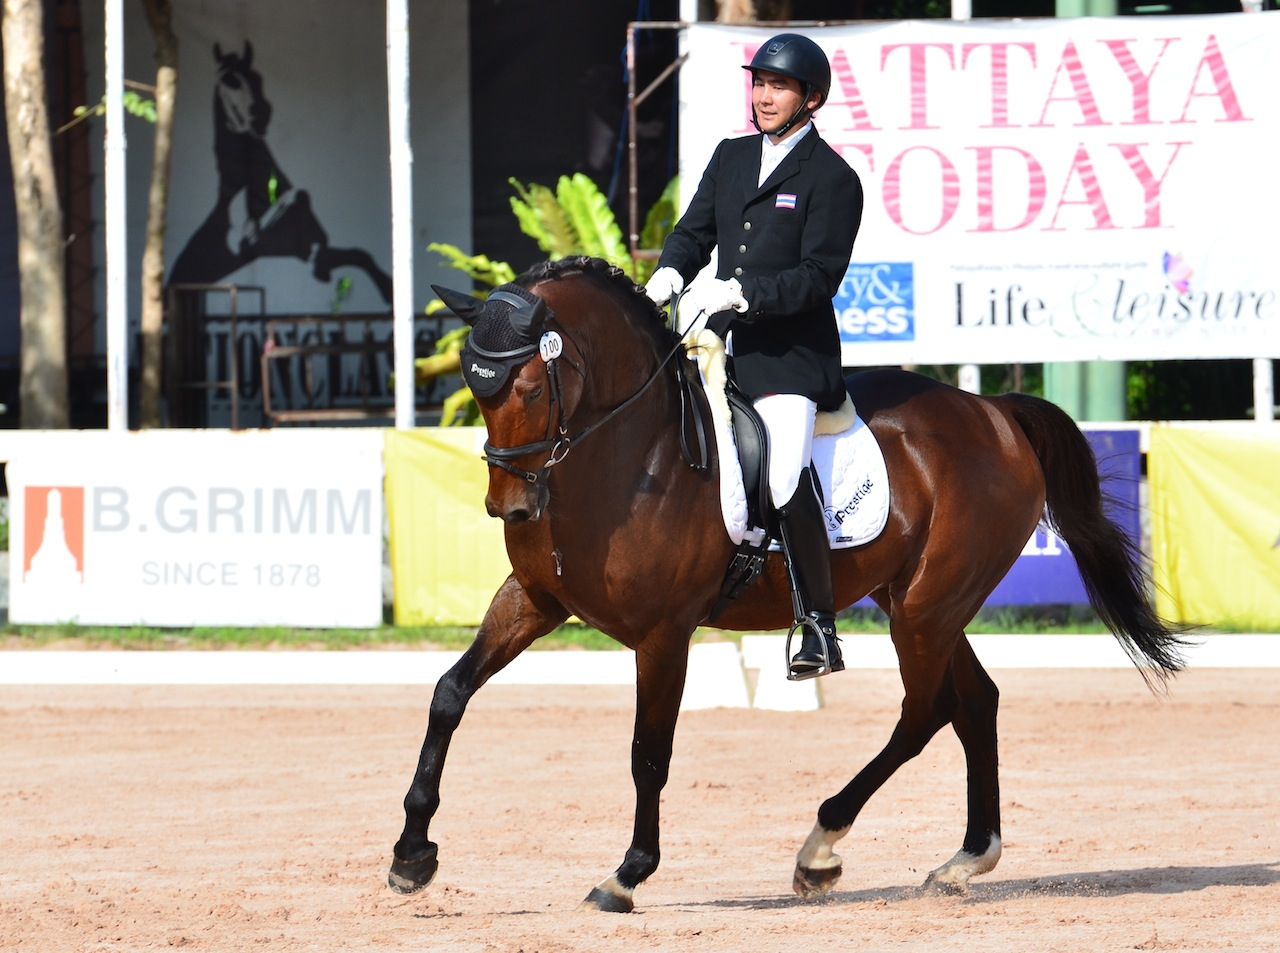 Medium class at FEI World Challenge